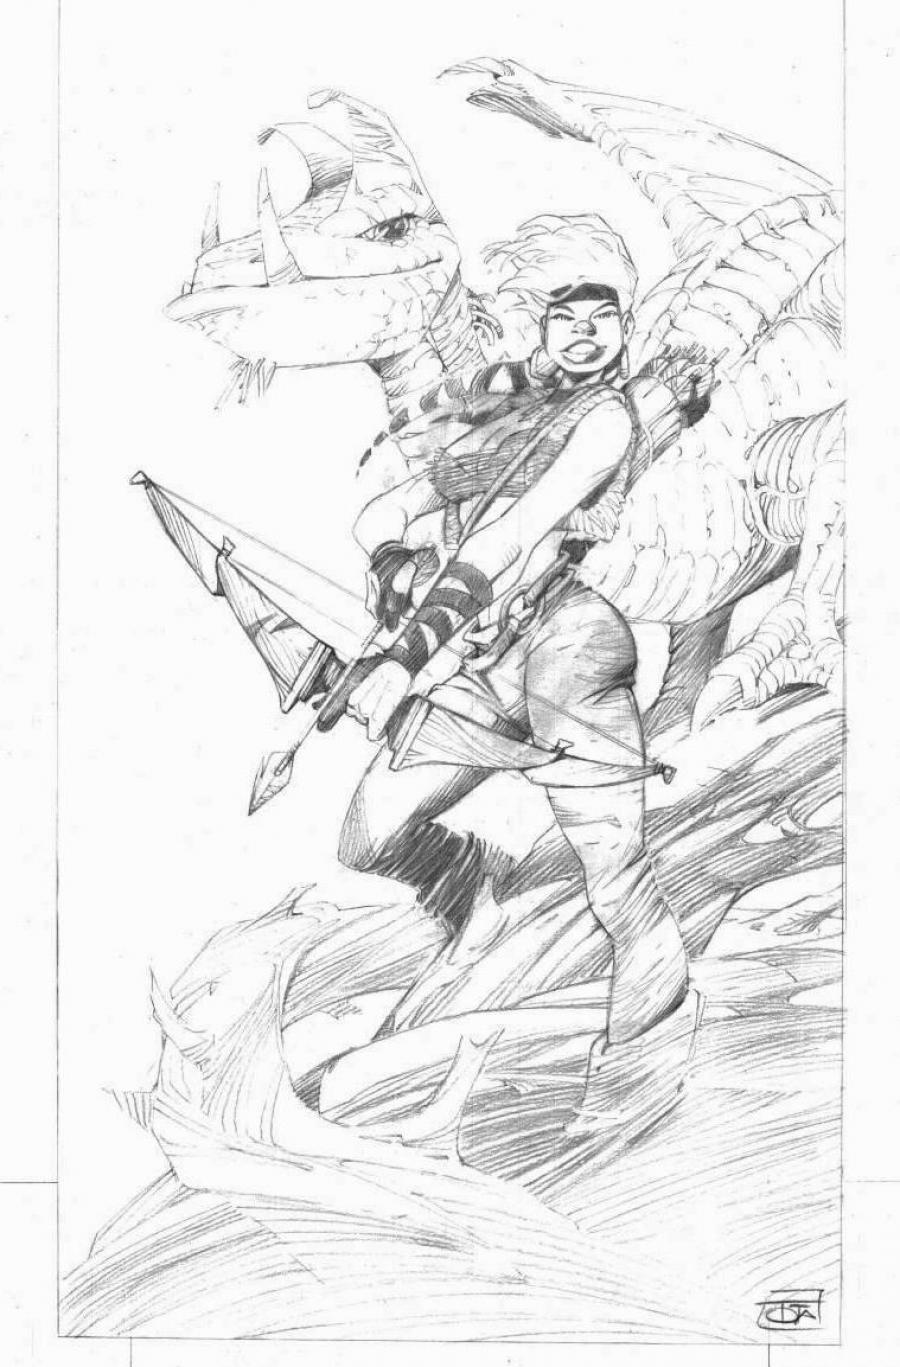 Original comic art for a poster from LES CONQUERANTS DE TROY by TOTA